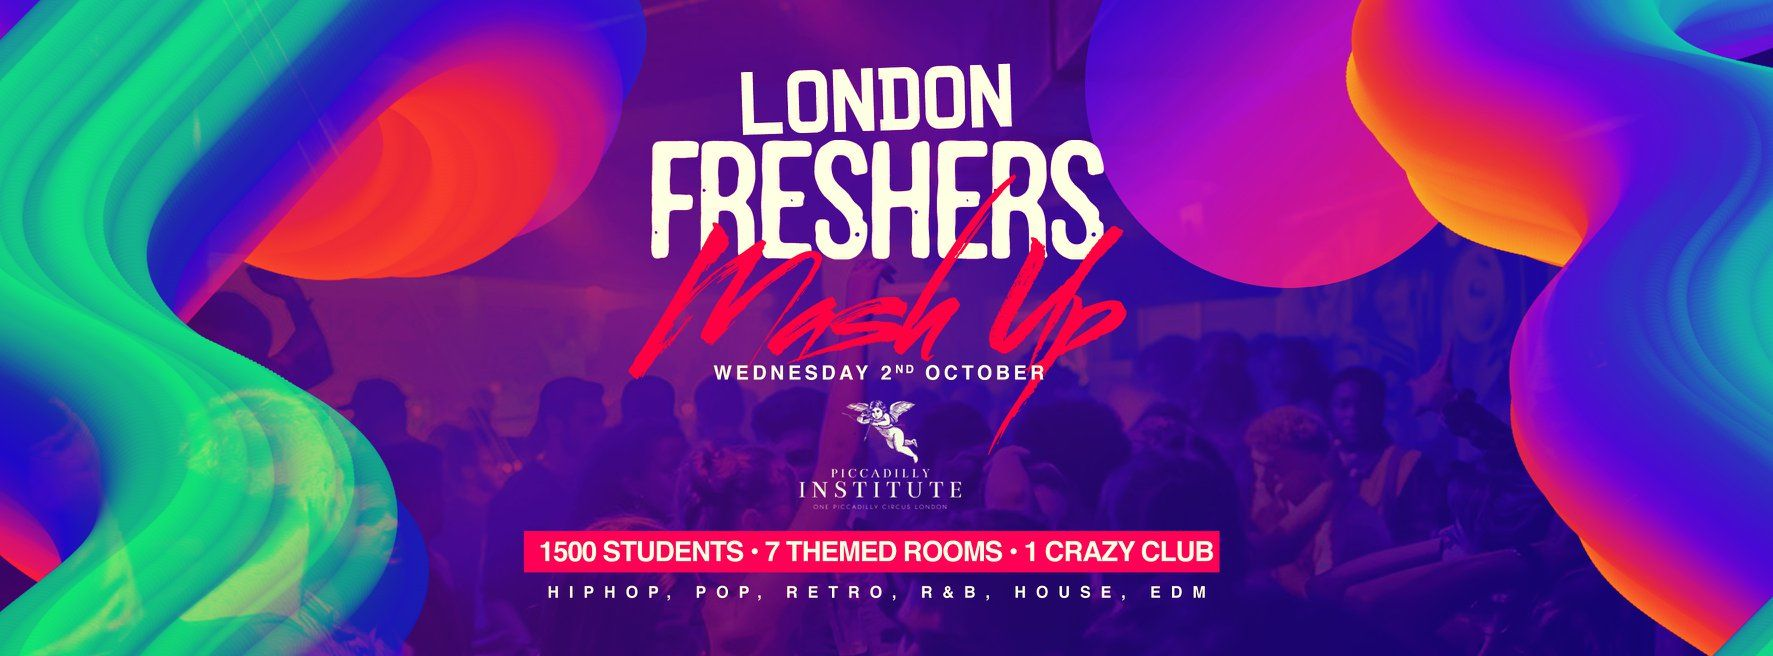 The London Freshers MASH UP ? | Piccadilly Institute